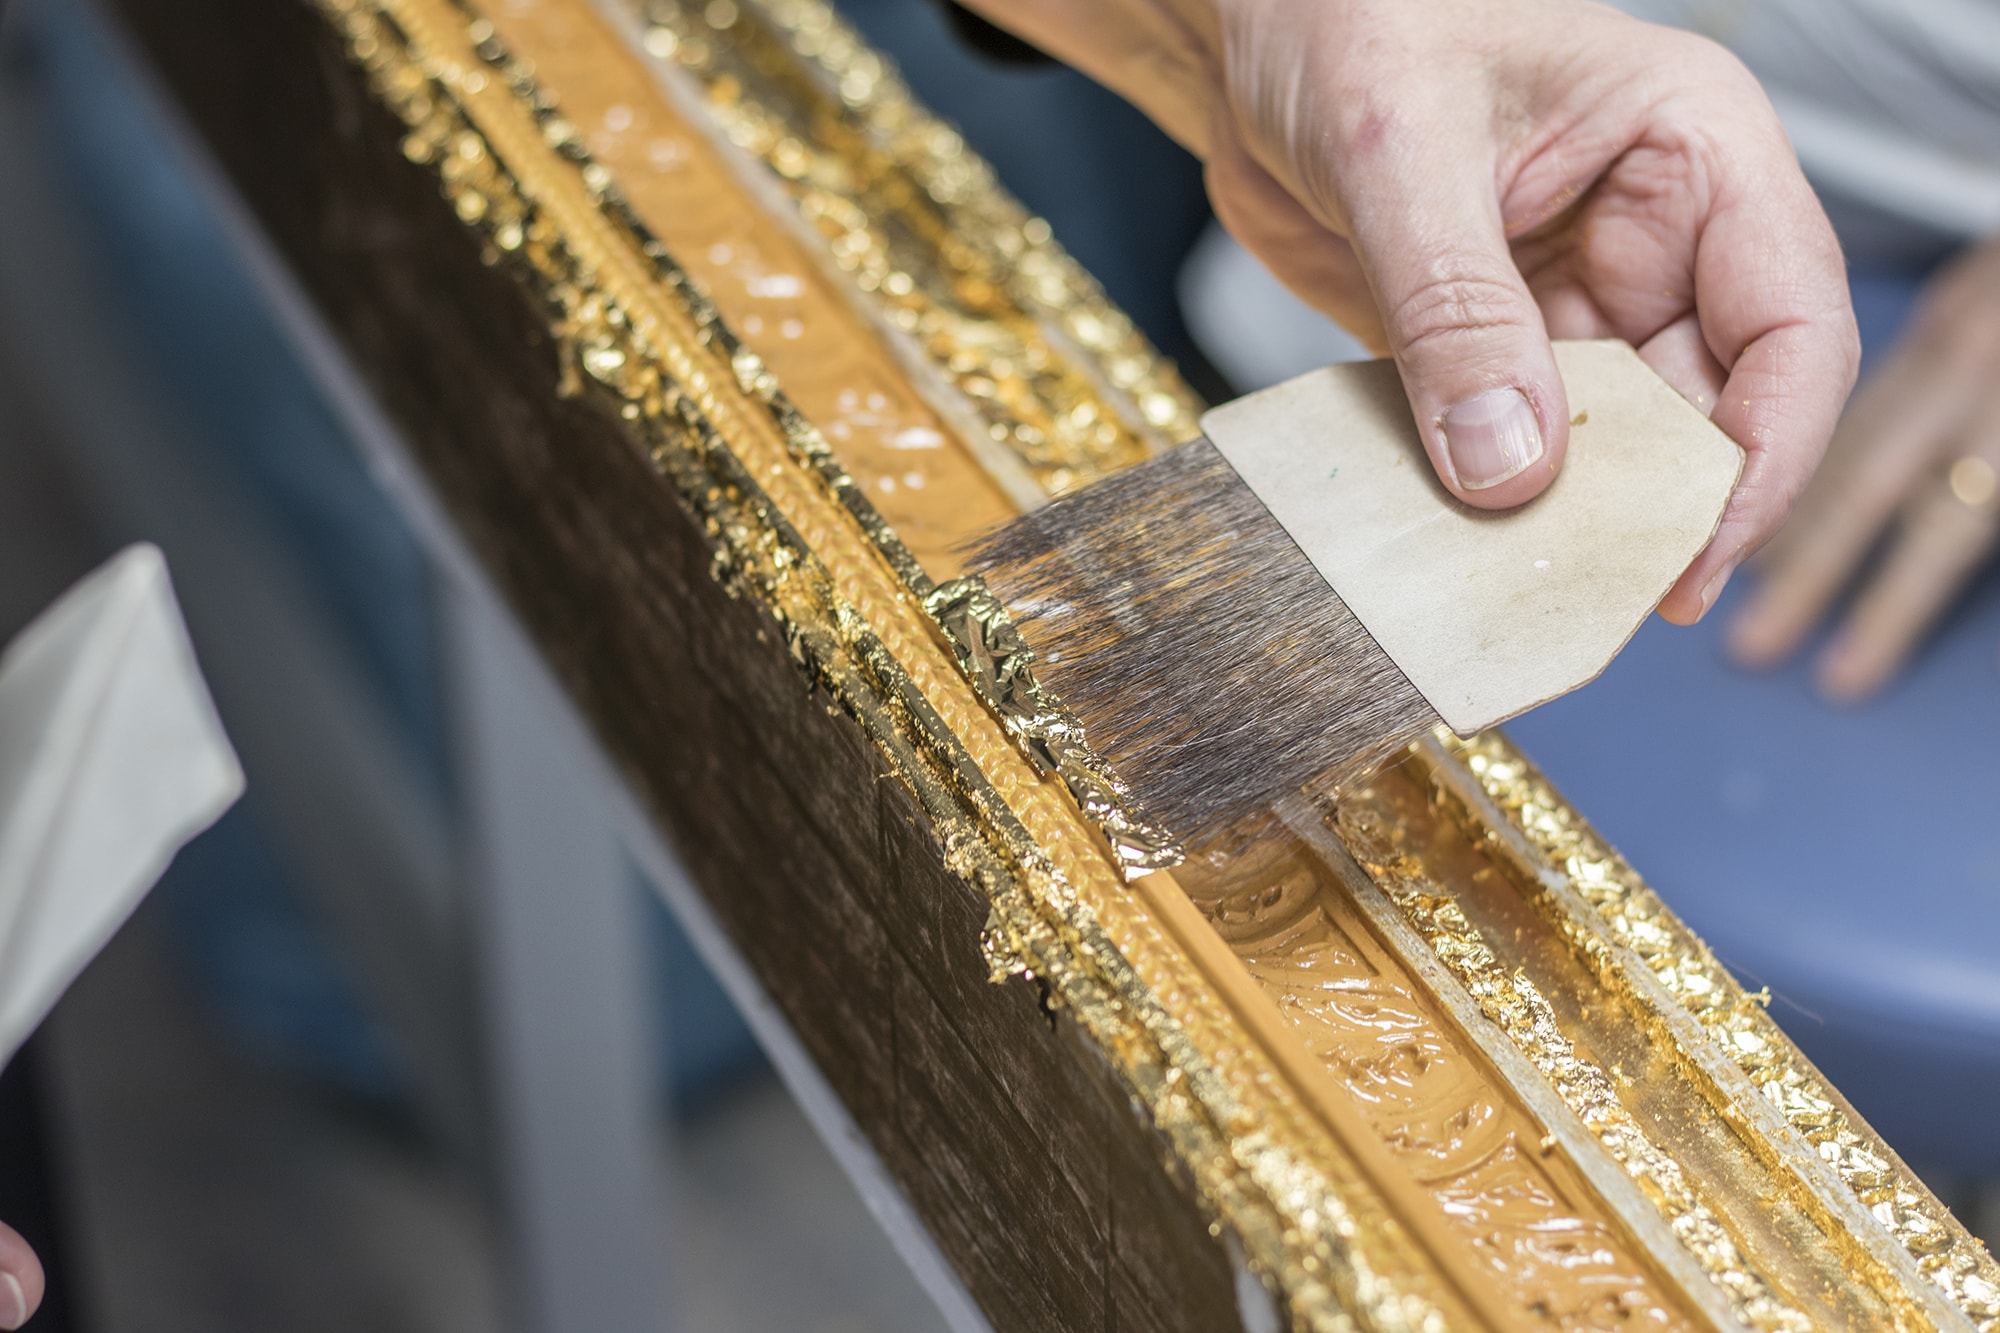 Applying gold leaf to the frame using a squirrel-tail brush